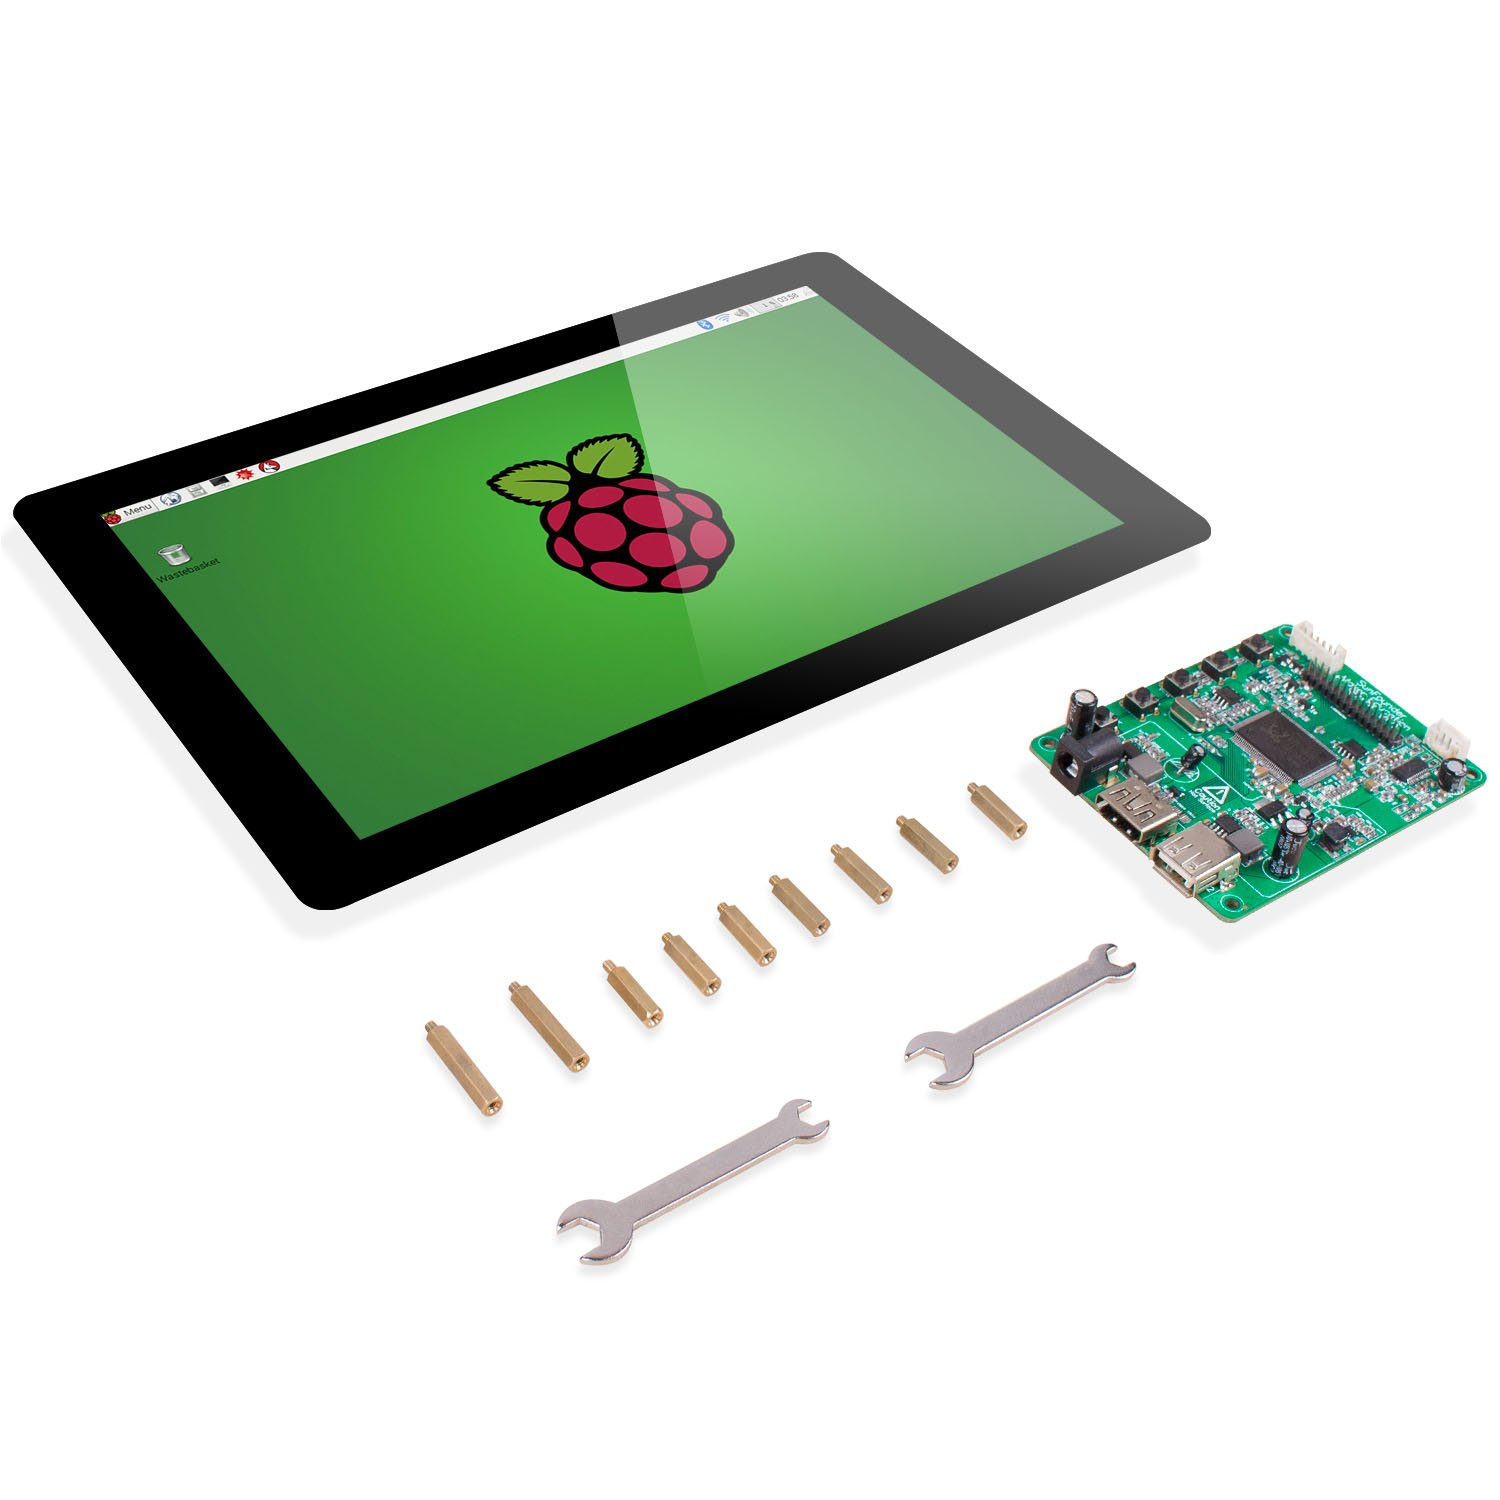 Raspberry Pi 101 Display Touchscreen Computer Zubehr Ips Ups Circuit Diagram